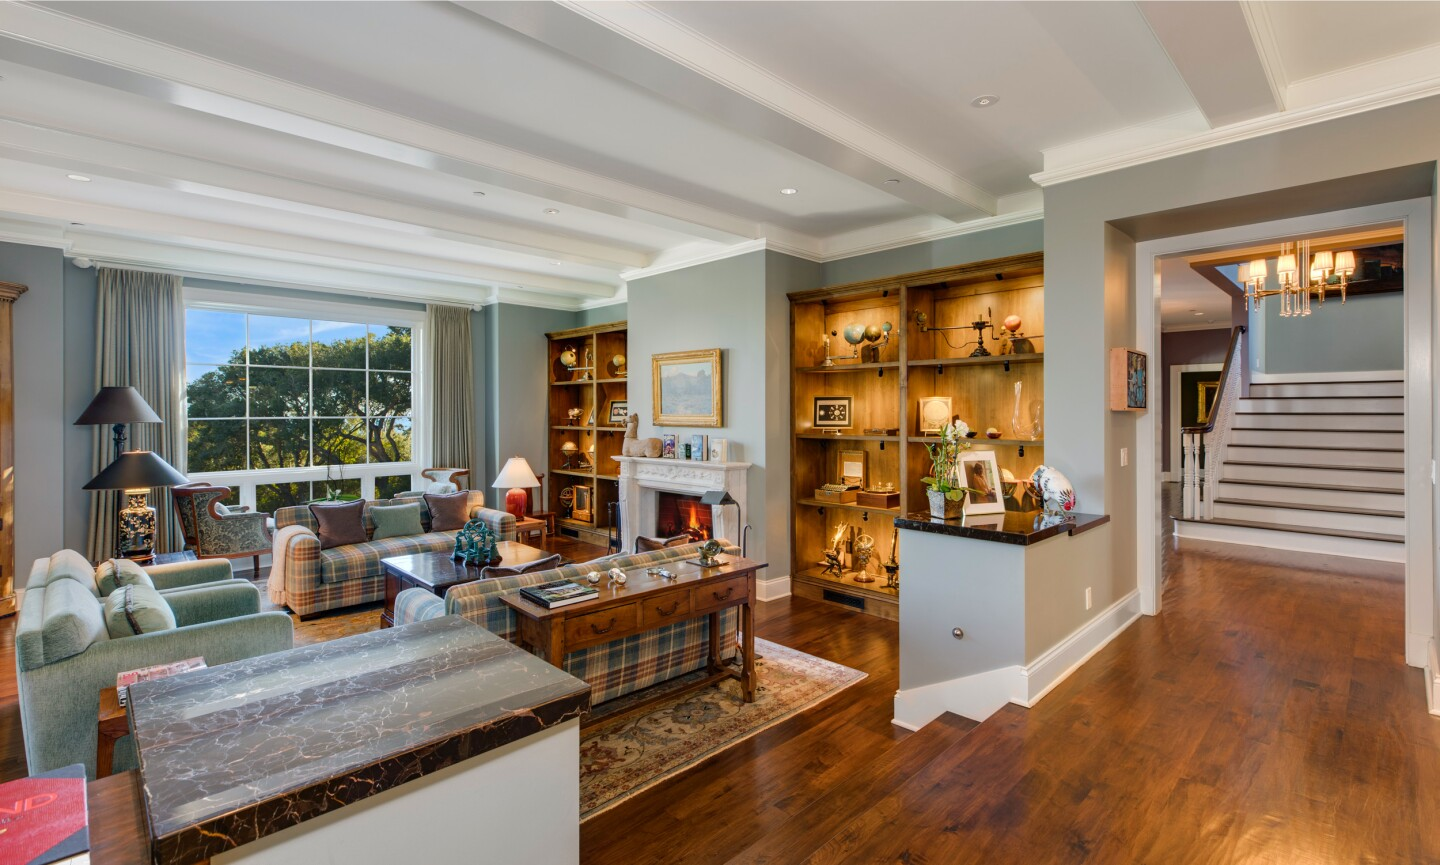 Spanning two acres in the hills of Montecito, the property features a two-story home with lots of outdoor entertaining spaces and a three-car garage with a guesthouse up top.